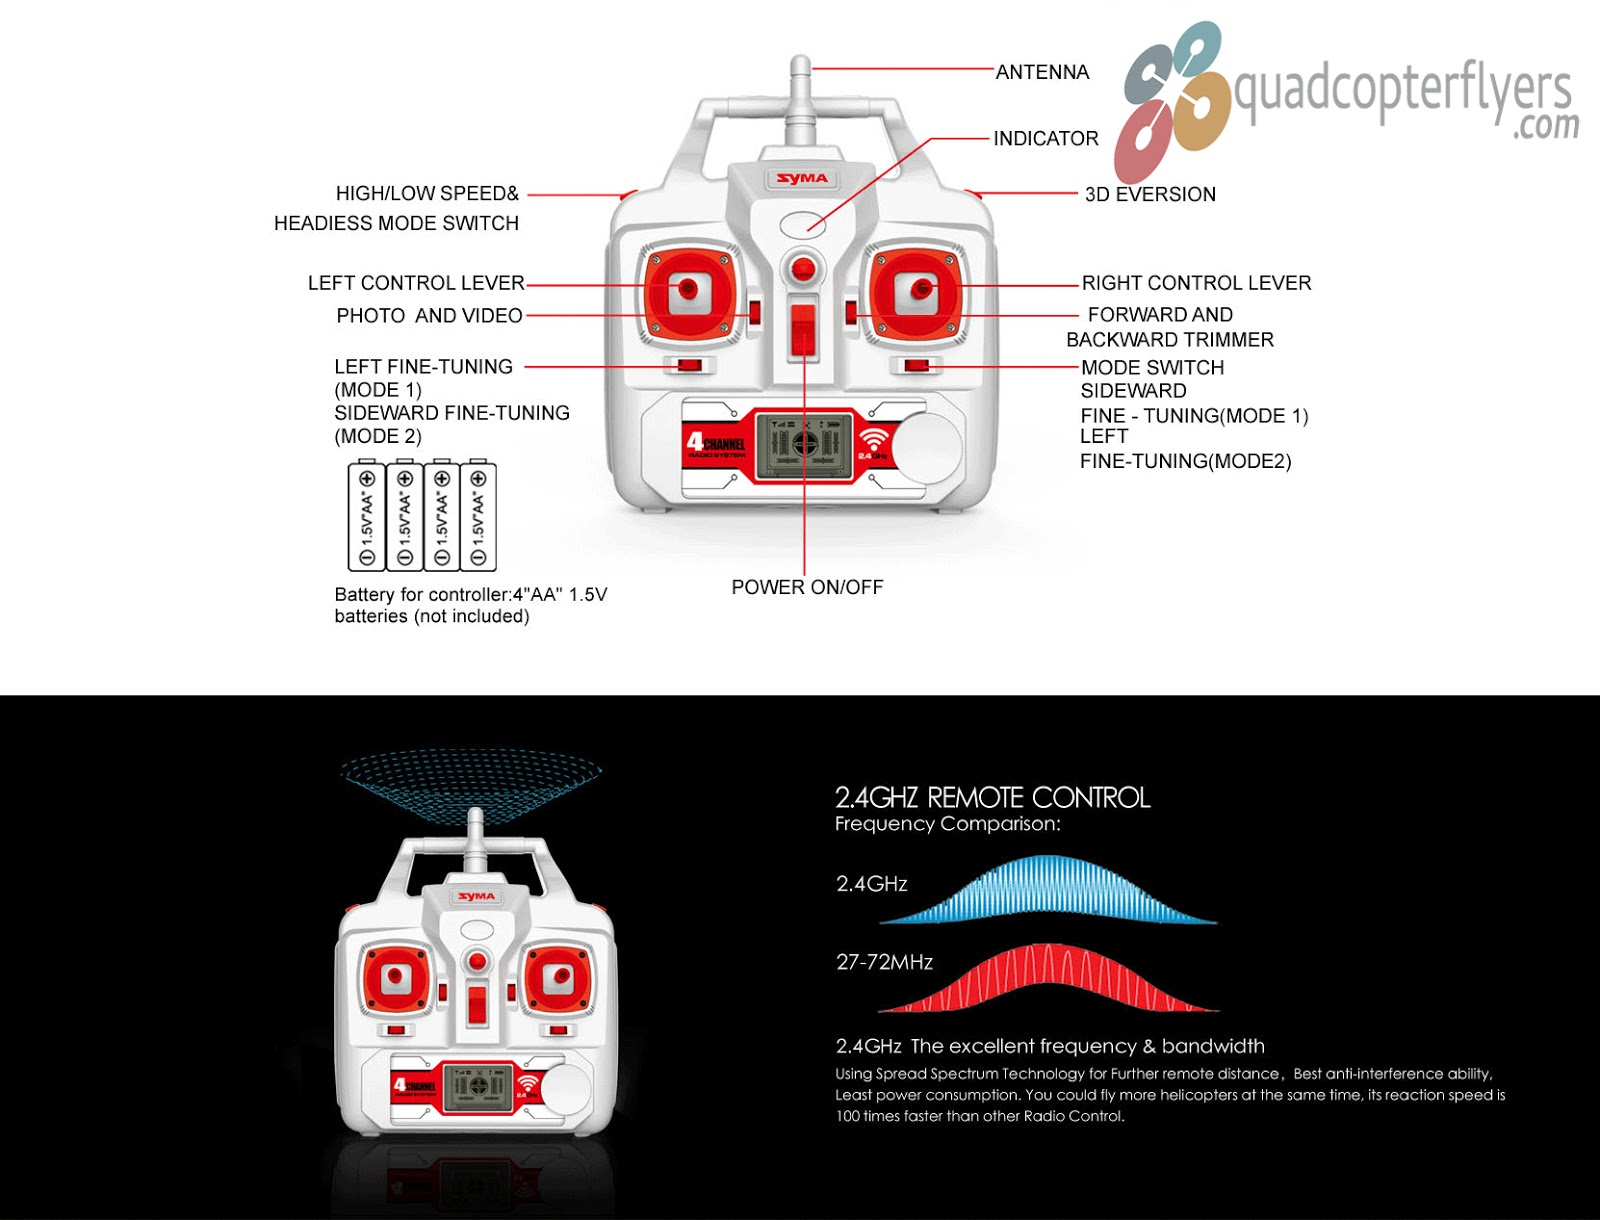 Syma X8g Quadcopter With Gopro Style Camera First Look. Symax8gtransmitter. Wiring. Syma X8 Wiring Diagram At Scoala.co